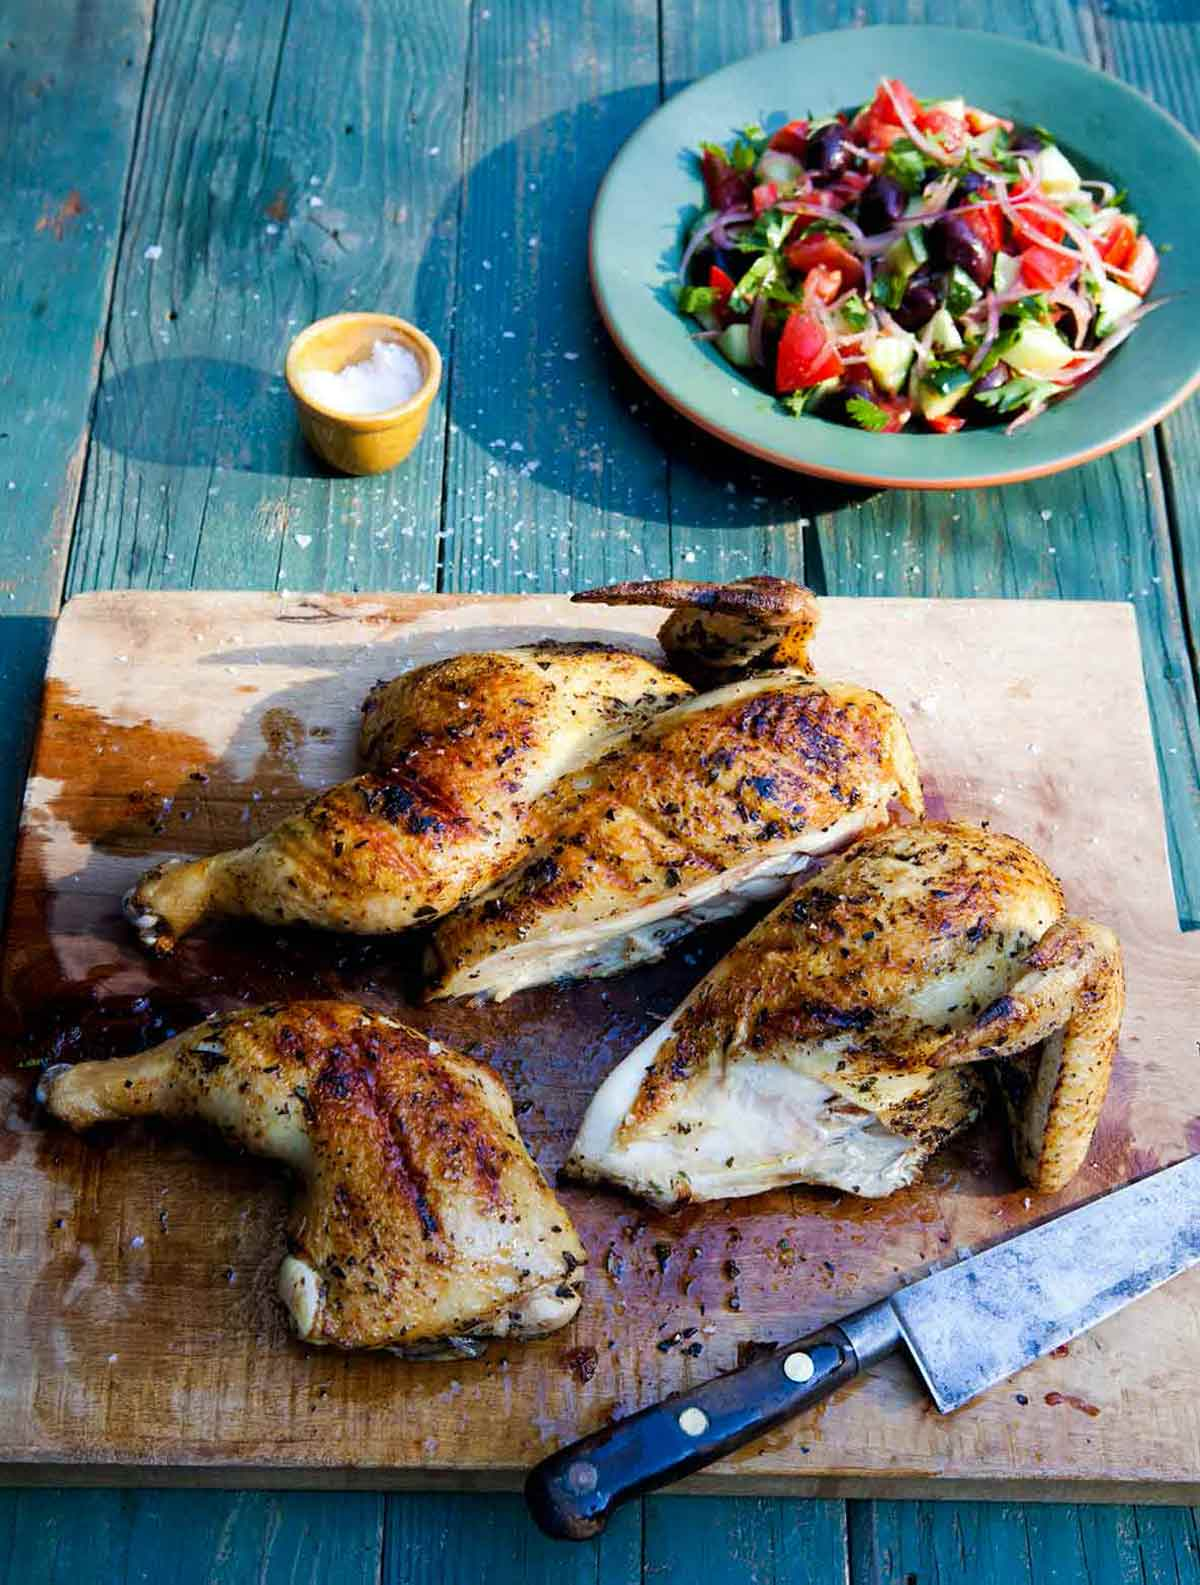 A wooden cutting board with a carved grilled Greek chicken and a knife resting beside it.